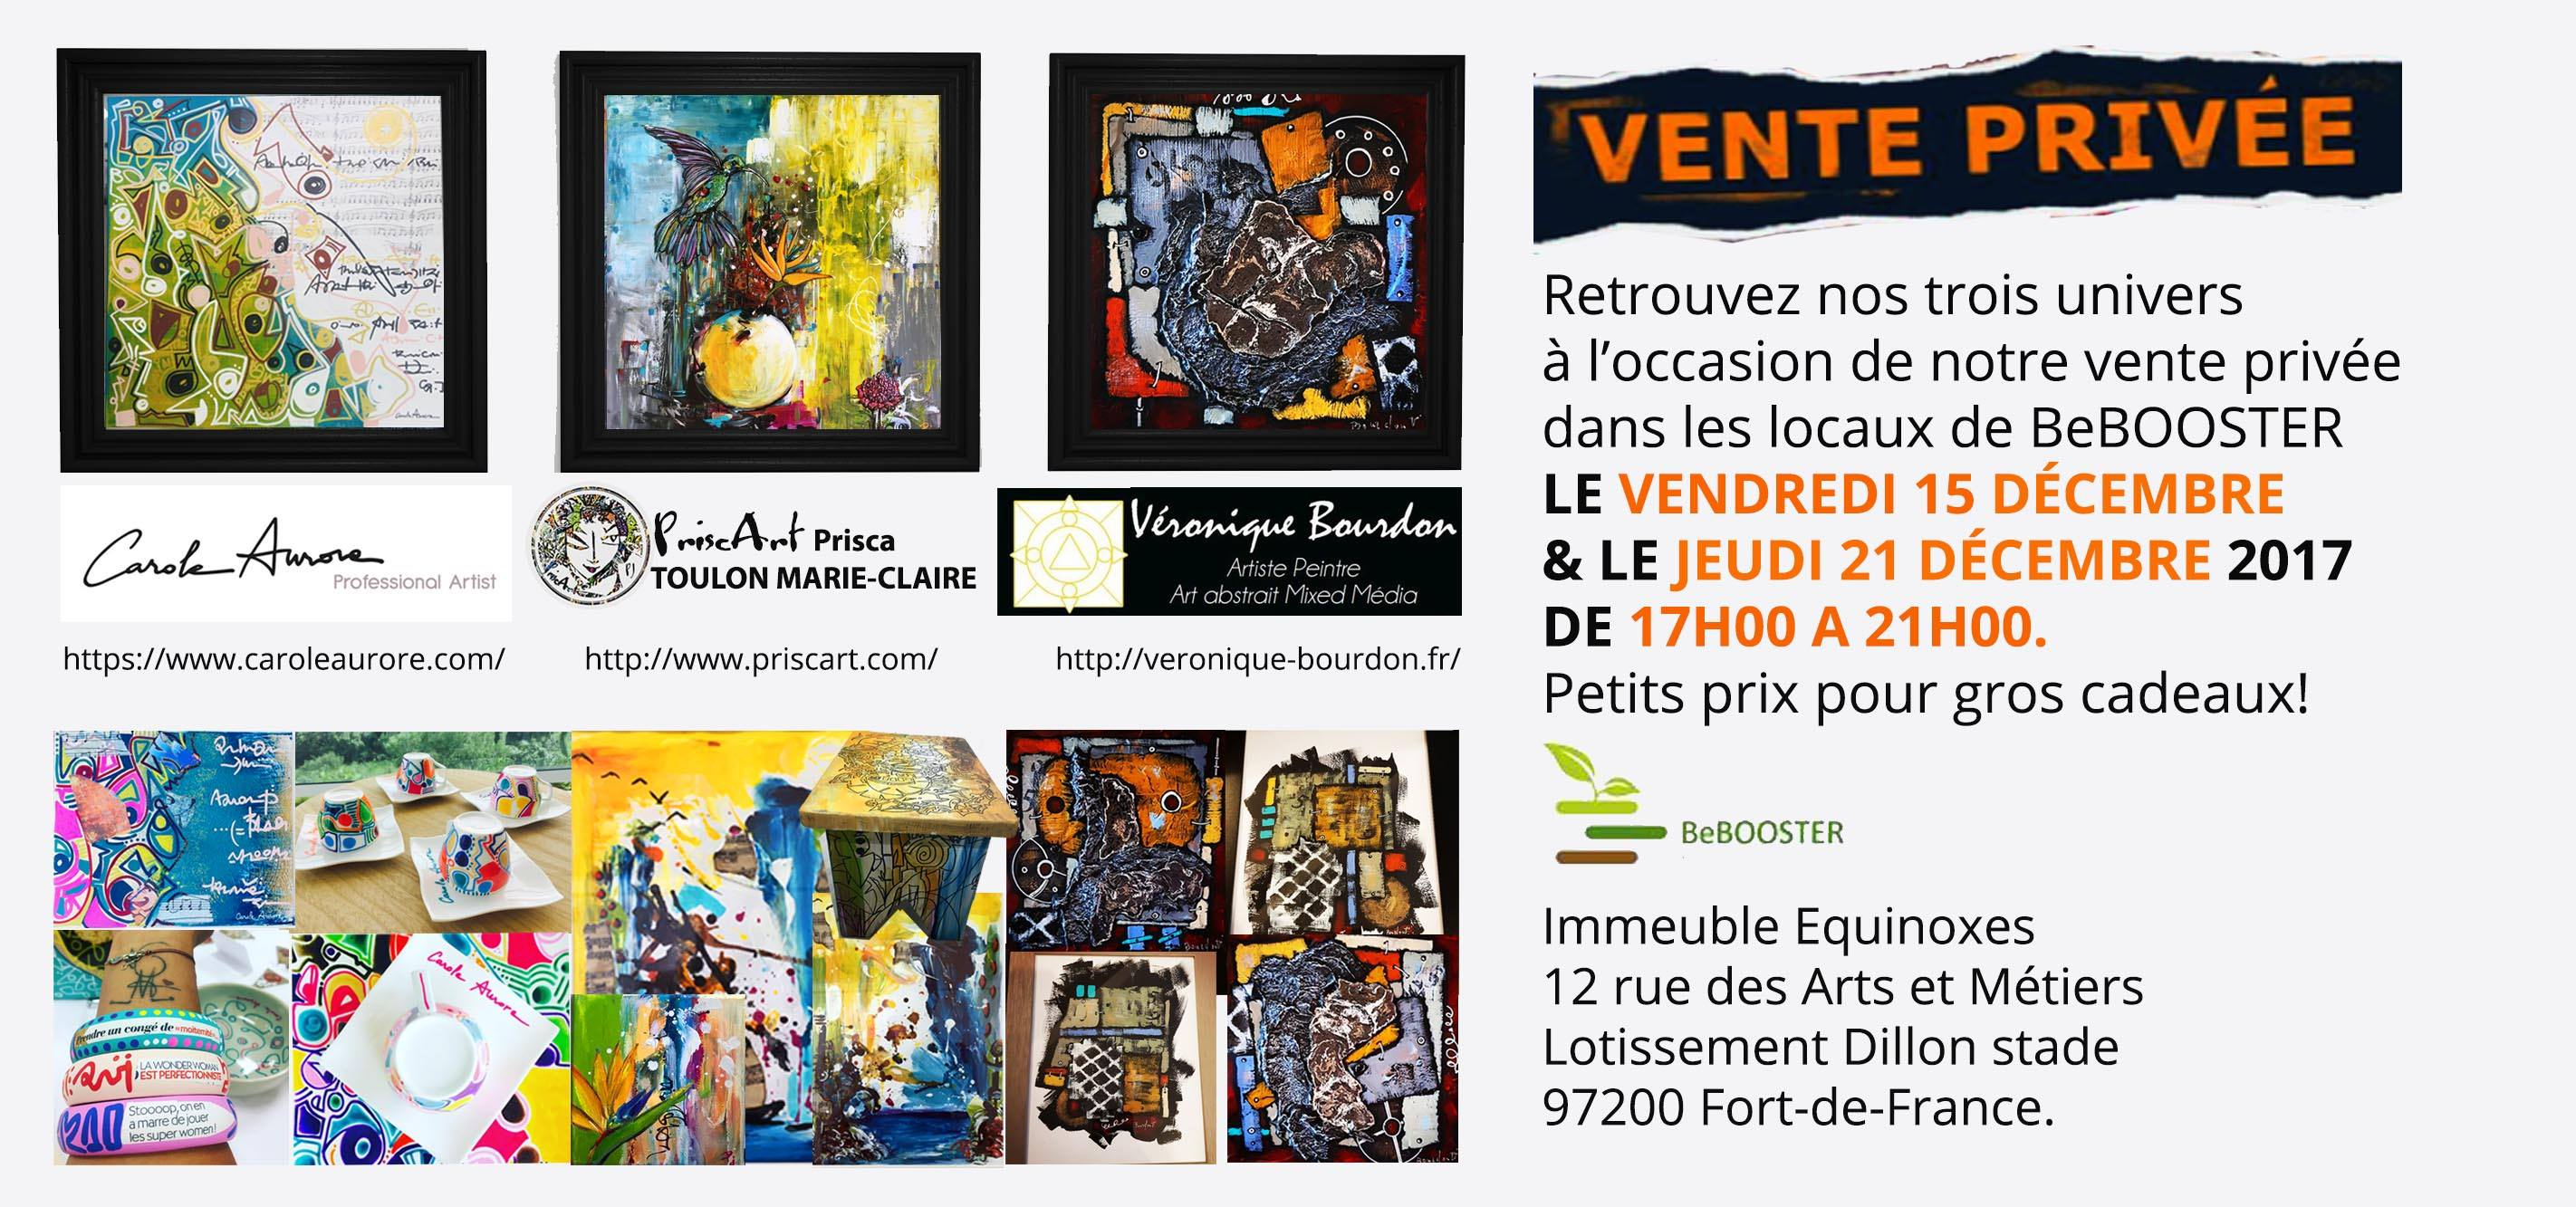 Vente Privee Art Vente Privée D Oeuvres D Art Carole Aurore Priscart Véronique